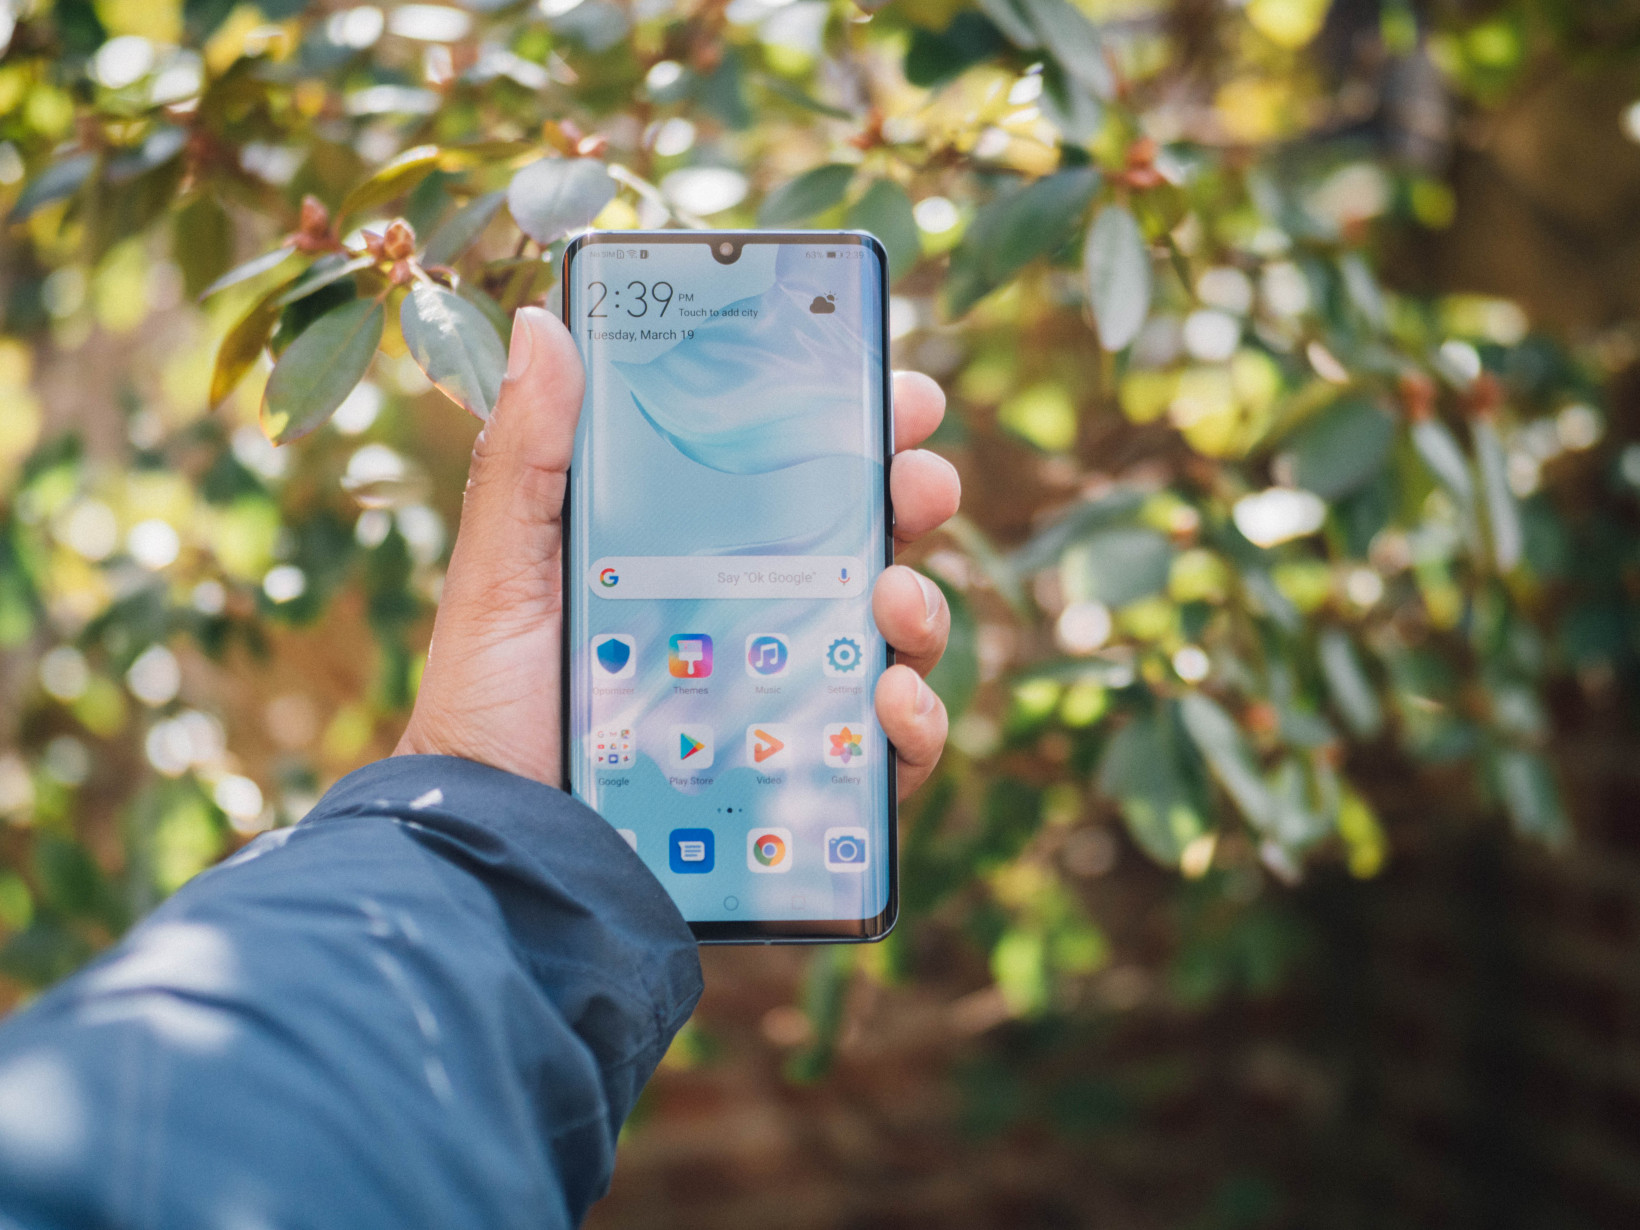 Here's why the Huawei P30 Pro's camera could redefine smartphone